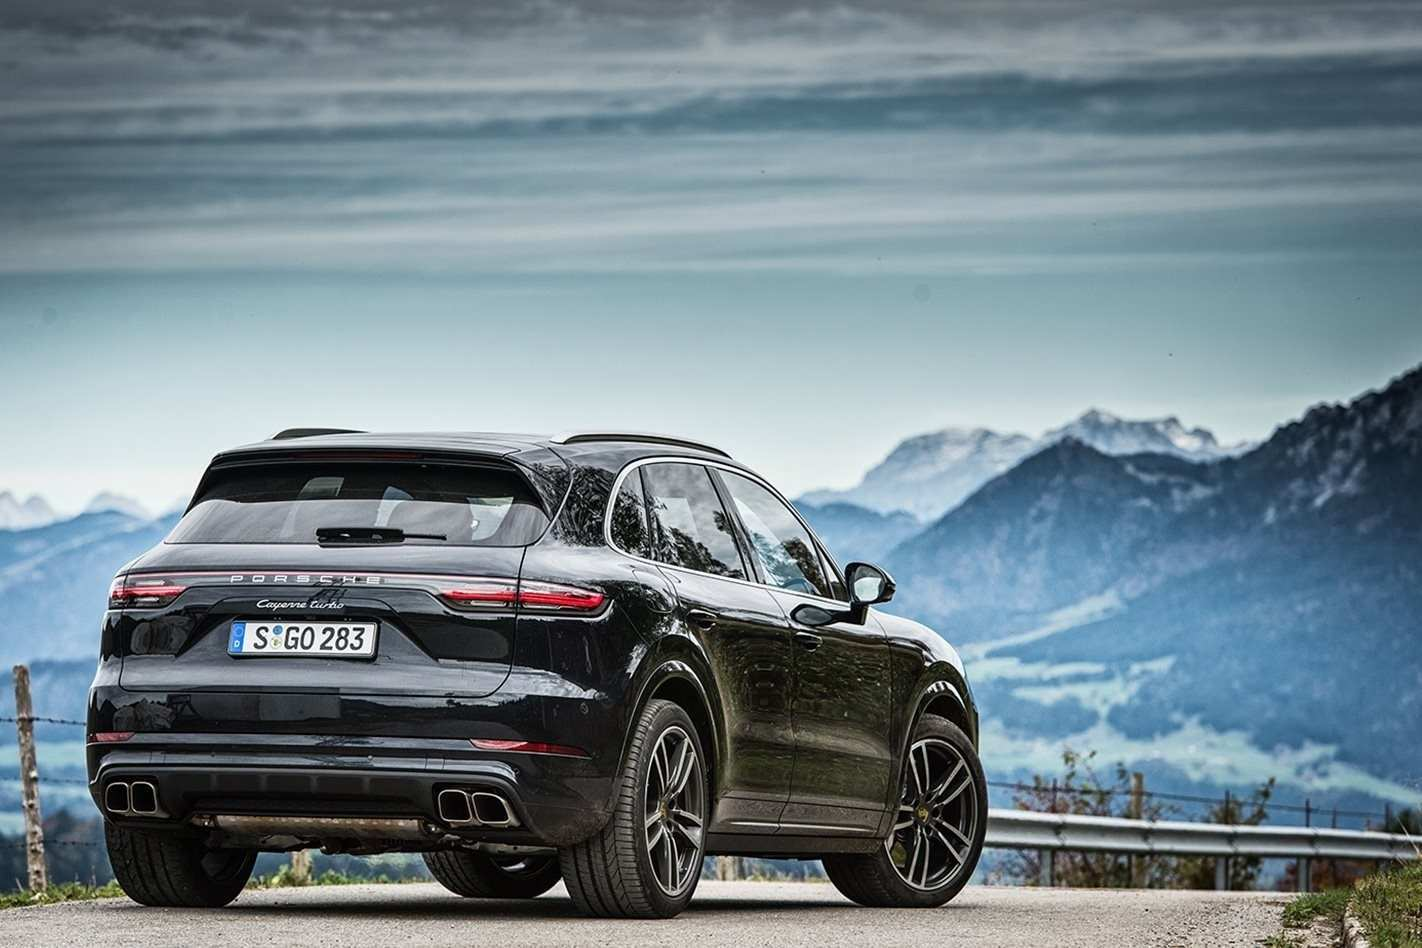 63 All New 2019 Porsche Cayenne Turbo Review Exterior